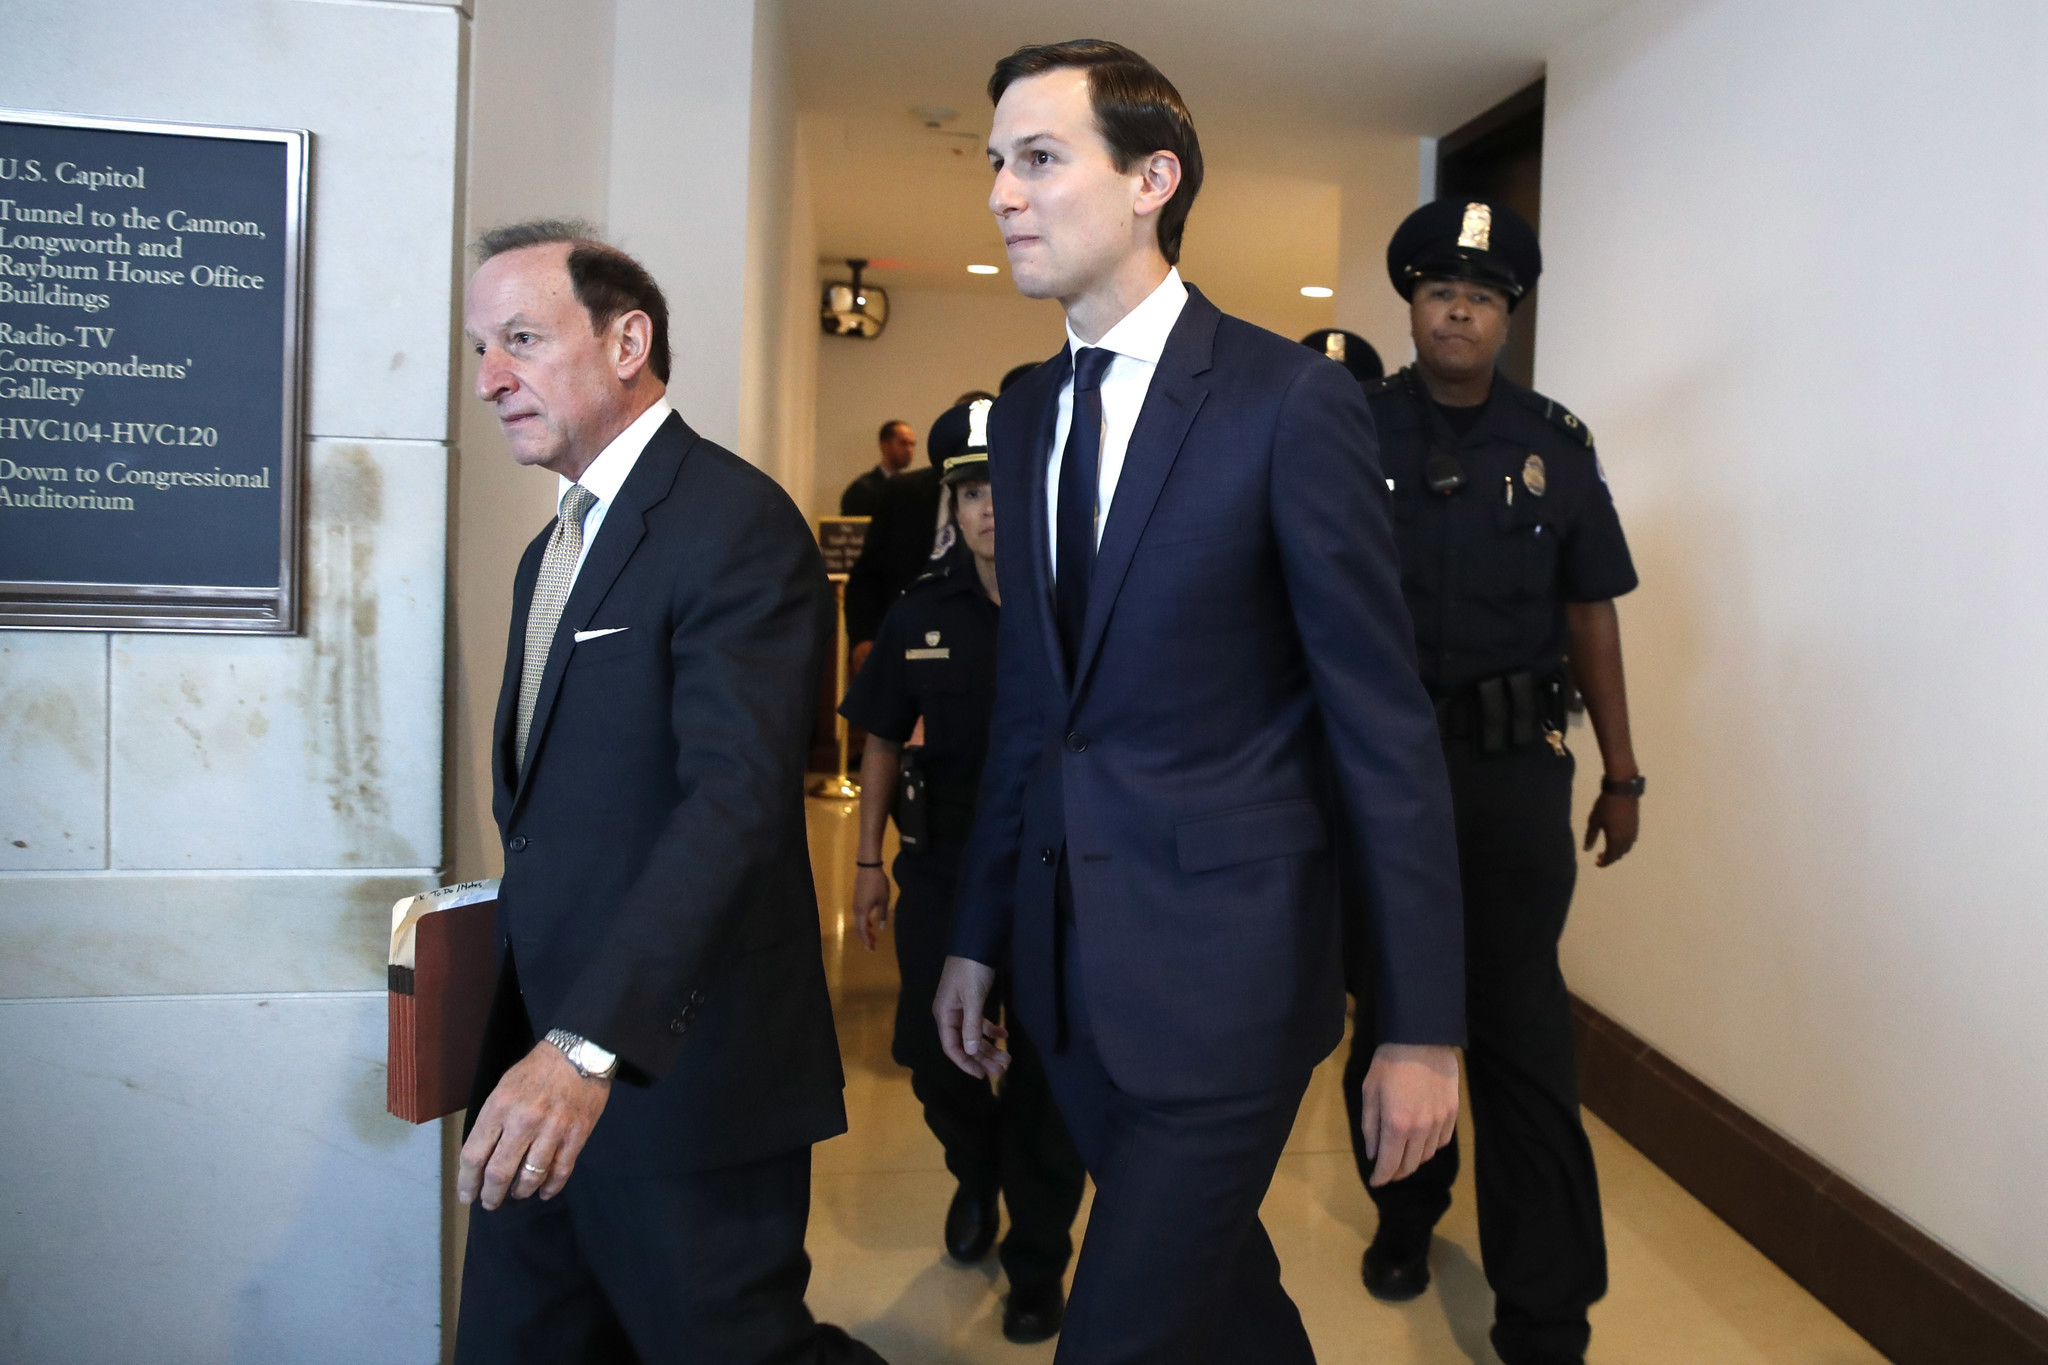 nypostcom Kushner returns to Capitol Hill for